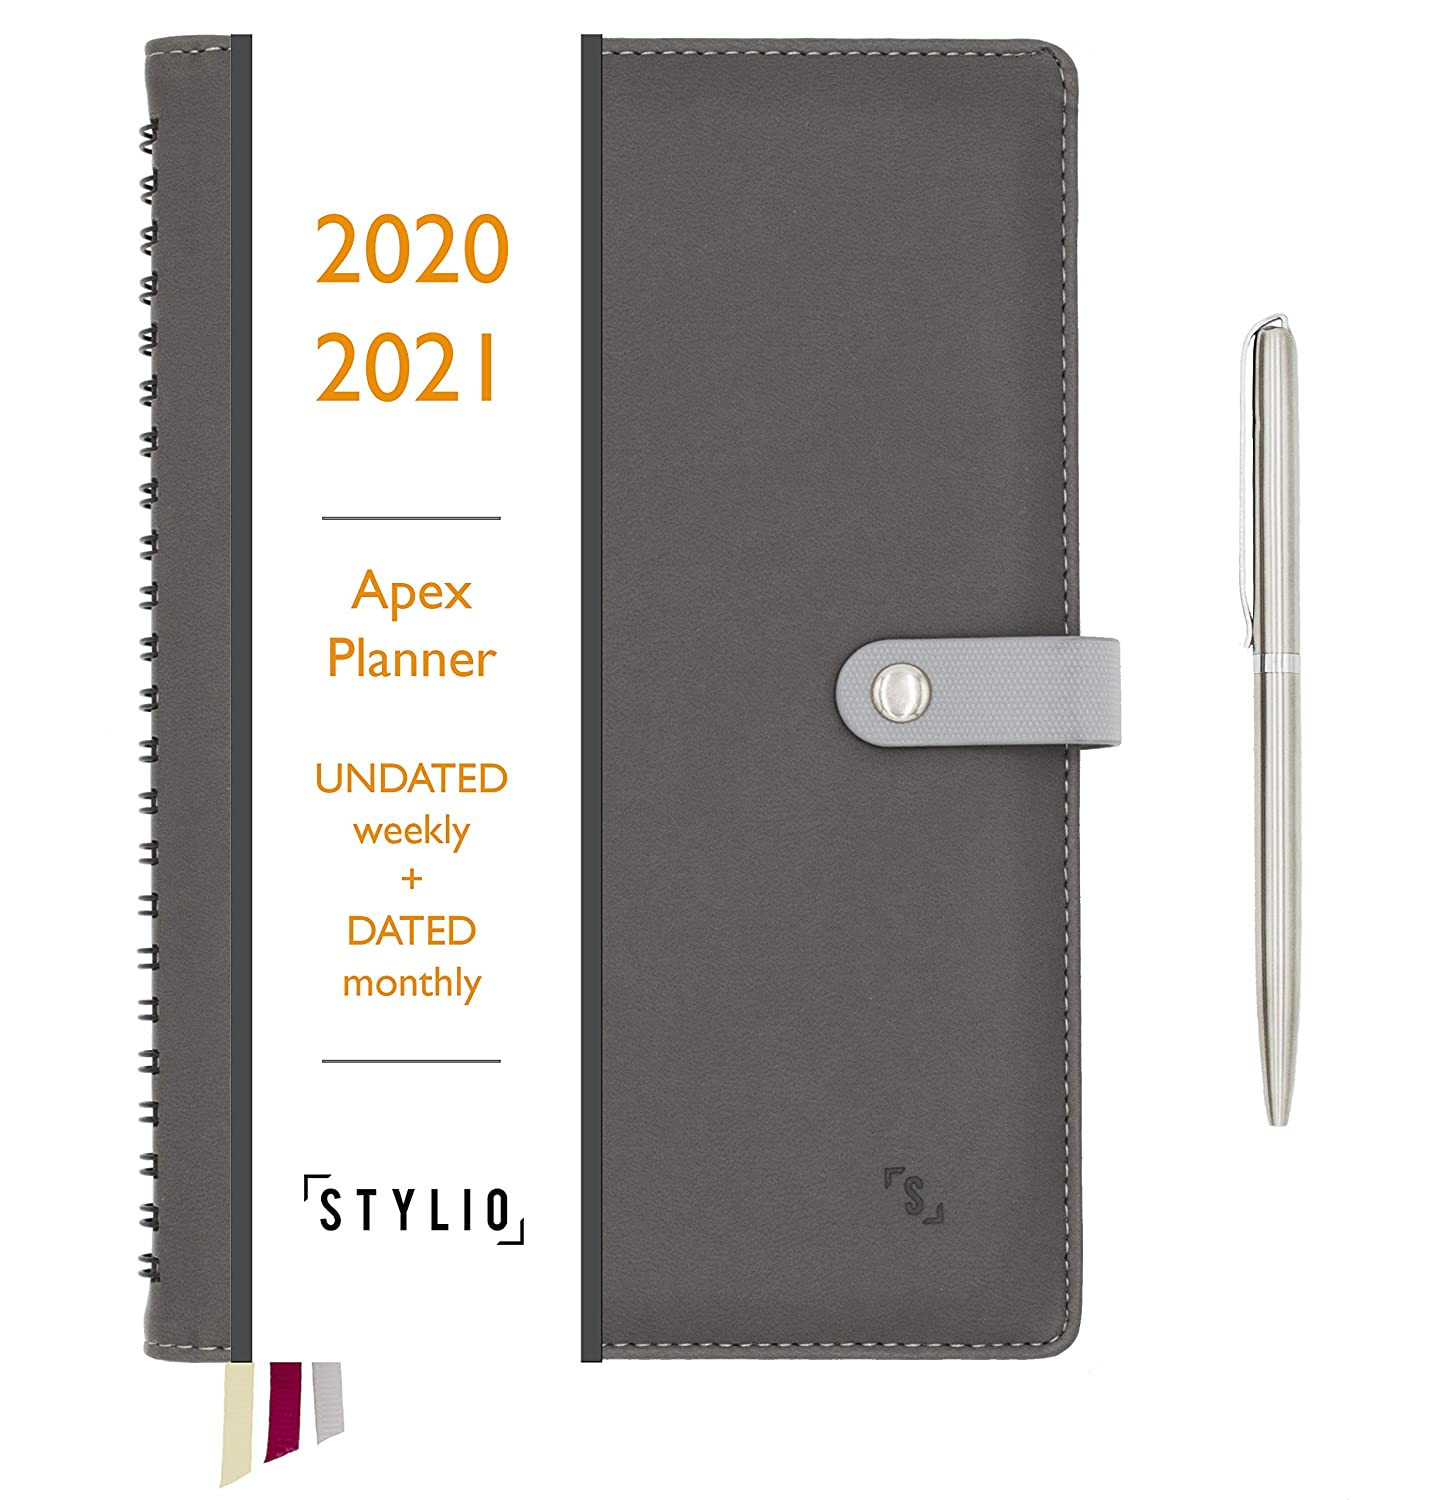 Stylio Apex Planner 2020/2021 Undated Weekly, Dated Monthly Calendar. Daily Personal Agenda Organizer für Business/Academic/School Life. Goals, Passion Journal Notebook für Teachers & College Students